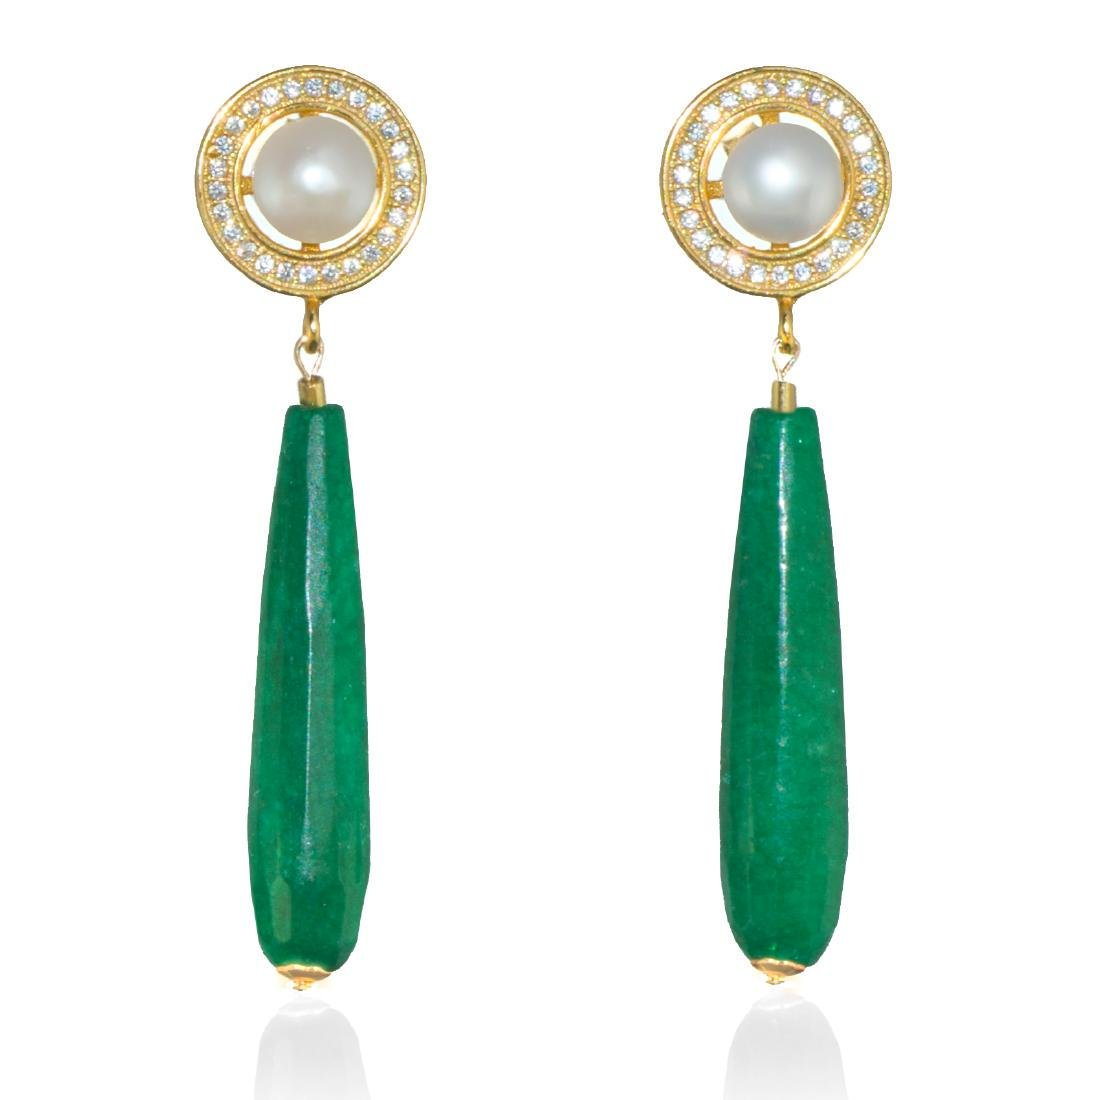 Imperial Jade & Pearl Earrings